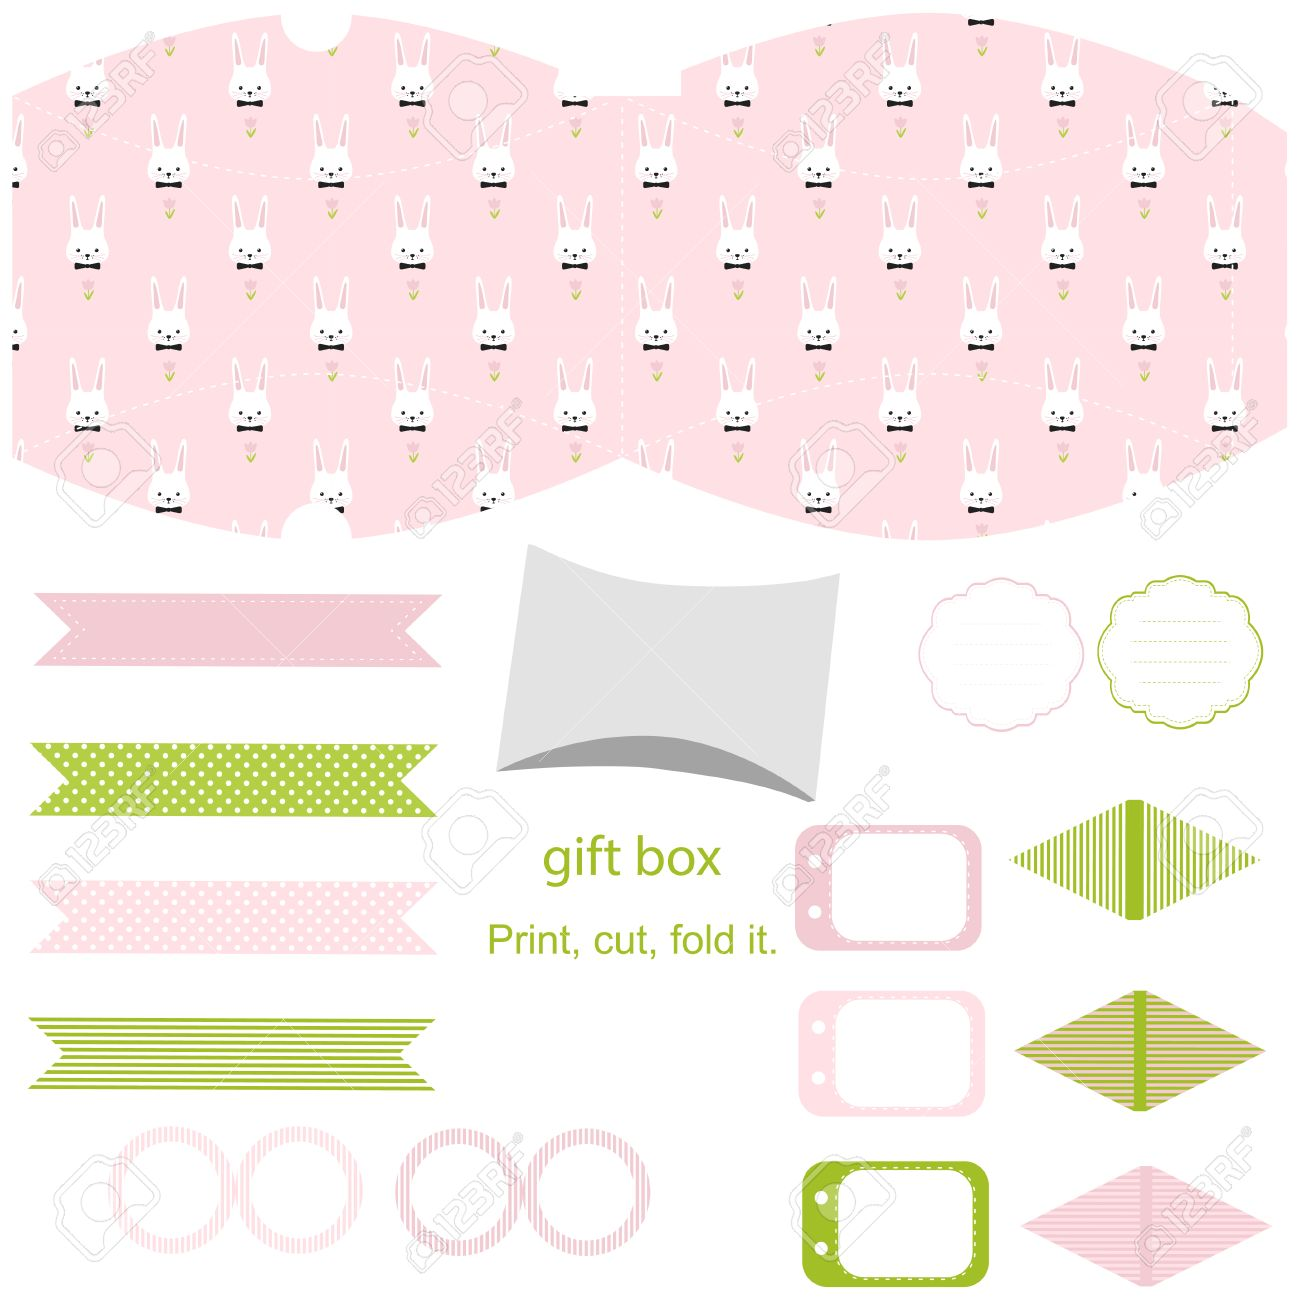 Party set gift box template empty labels and cupcake toppers easter bunny pattern party set gift box template empty labels and cupcake toppers and food tags negle Image collections